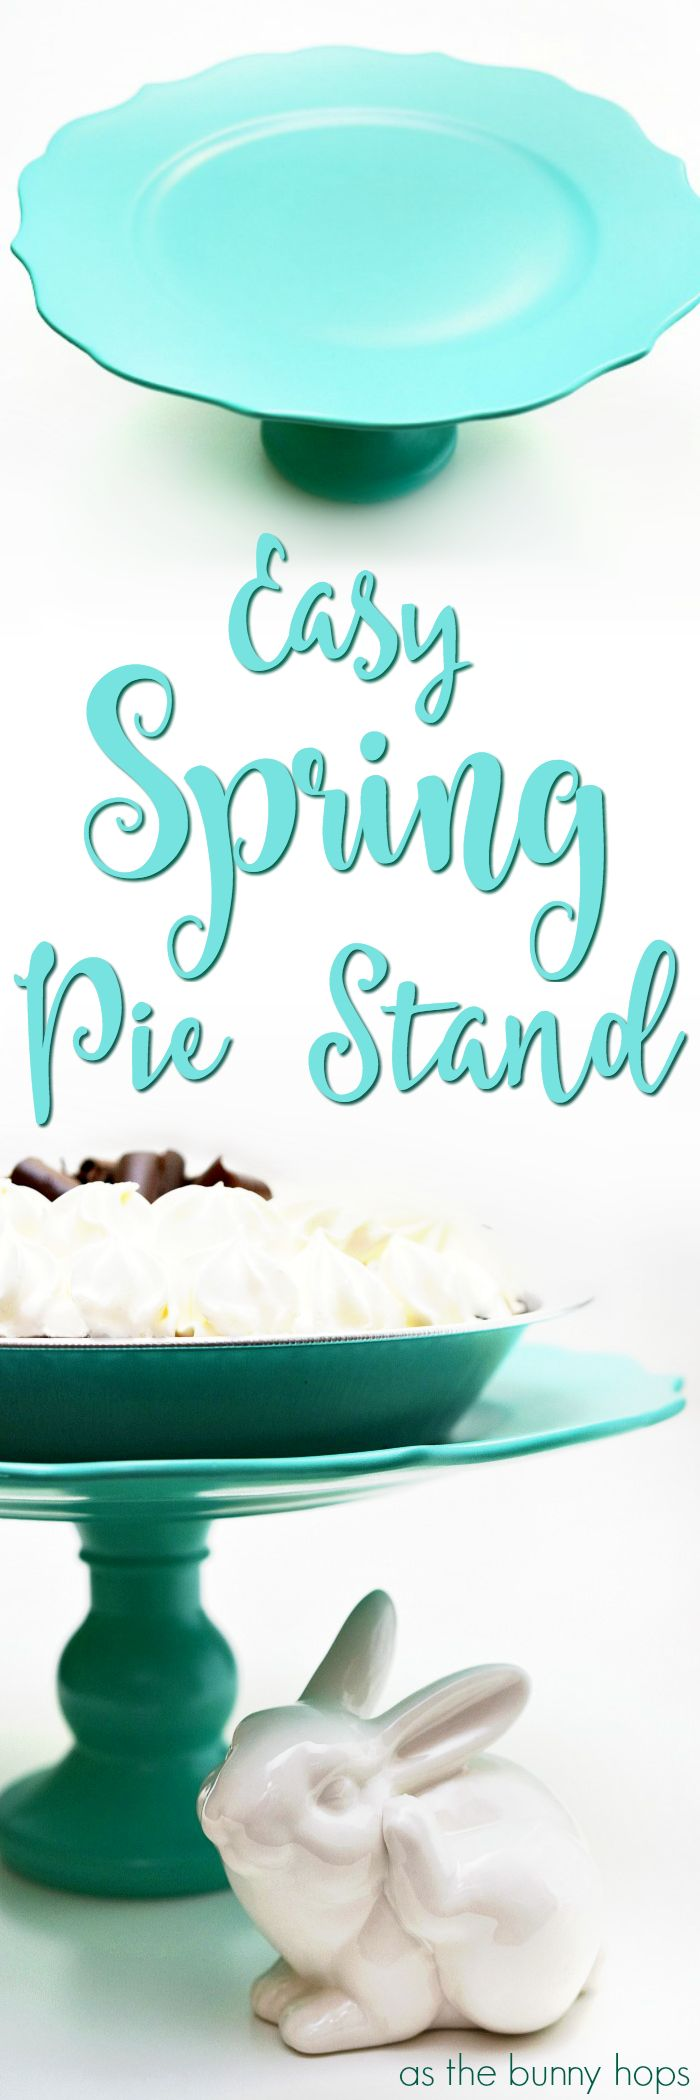 Make your own custom cake or pie stand for spring with just a few simple steps!